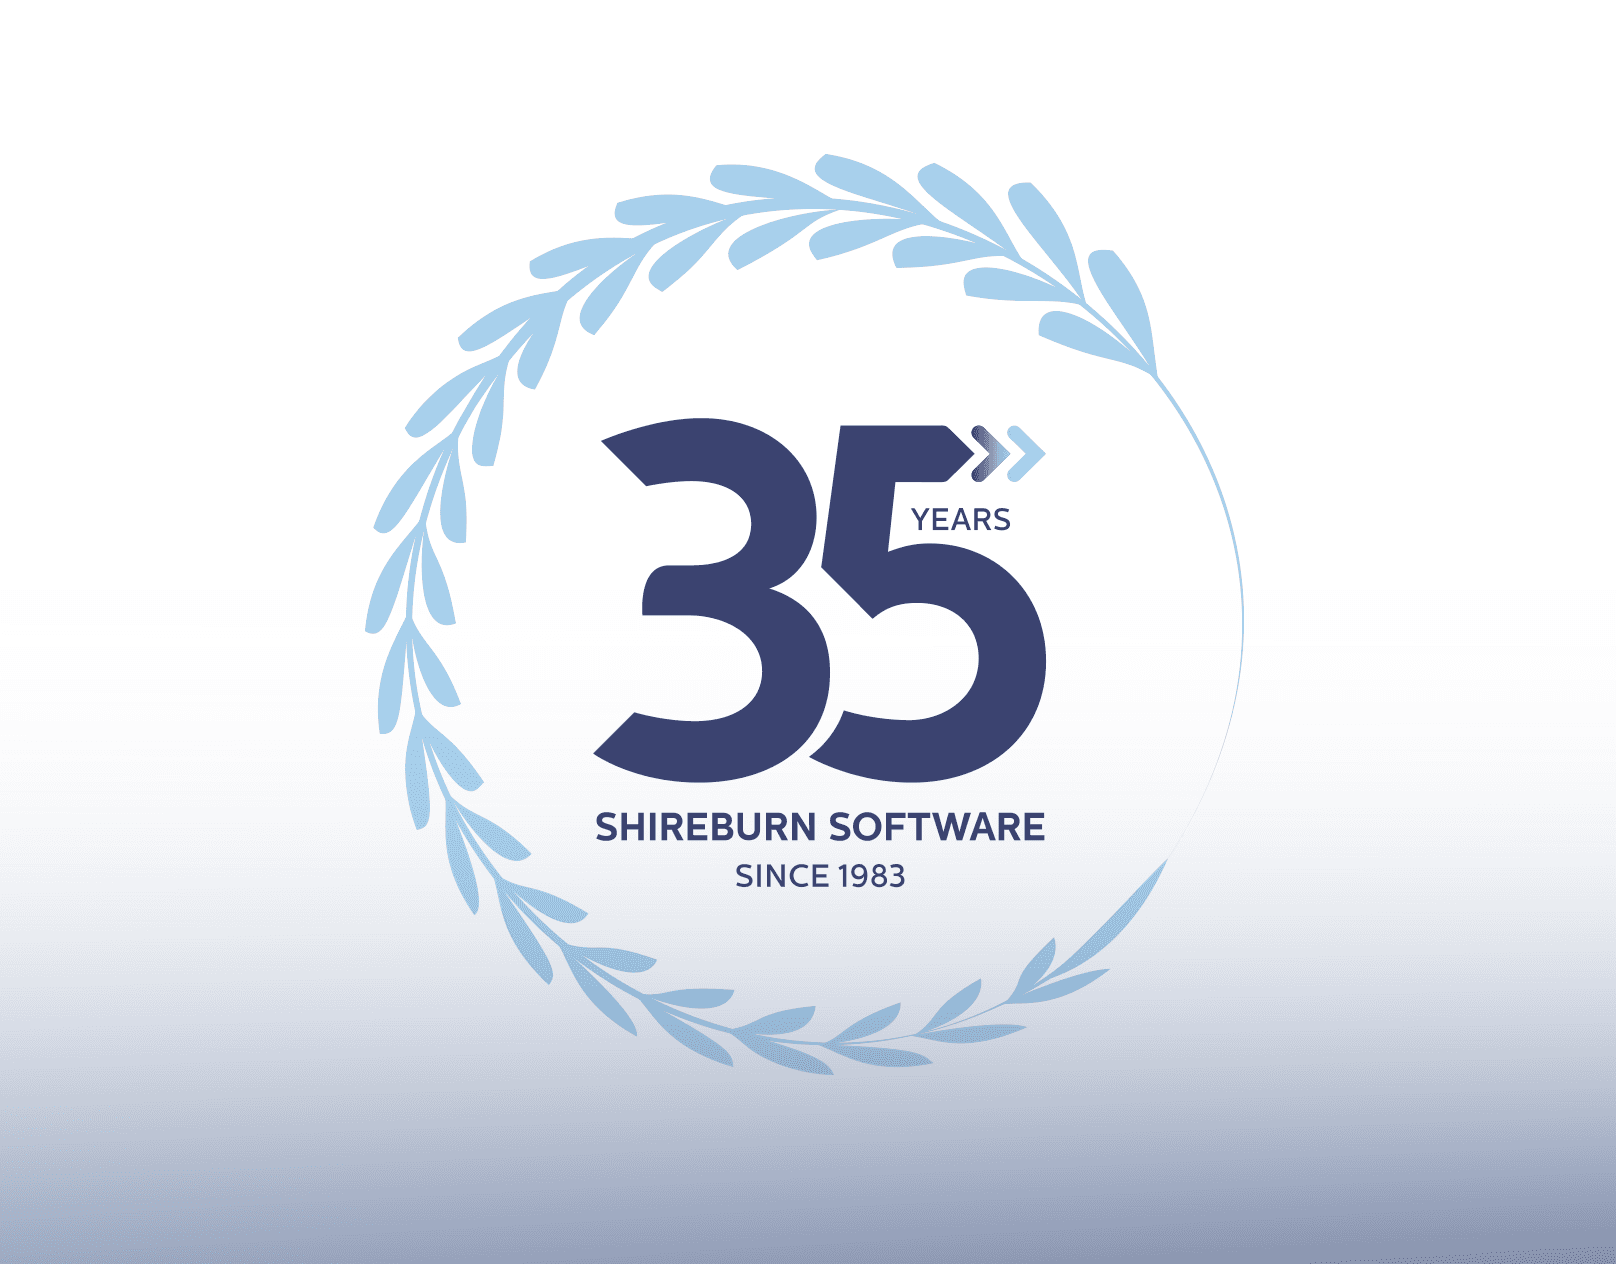 Celebrating 35 years of Shireburn image